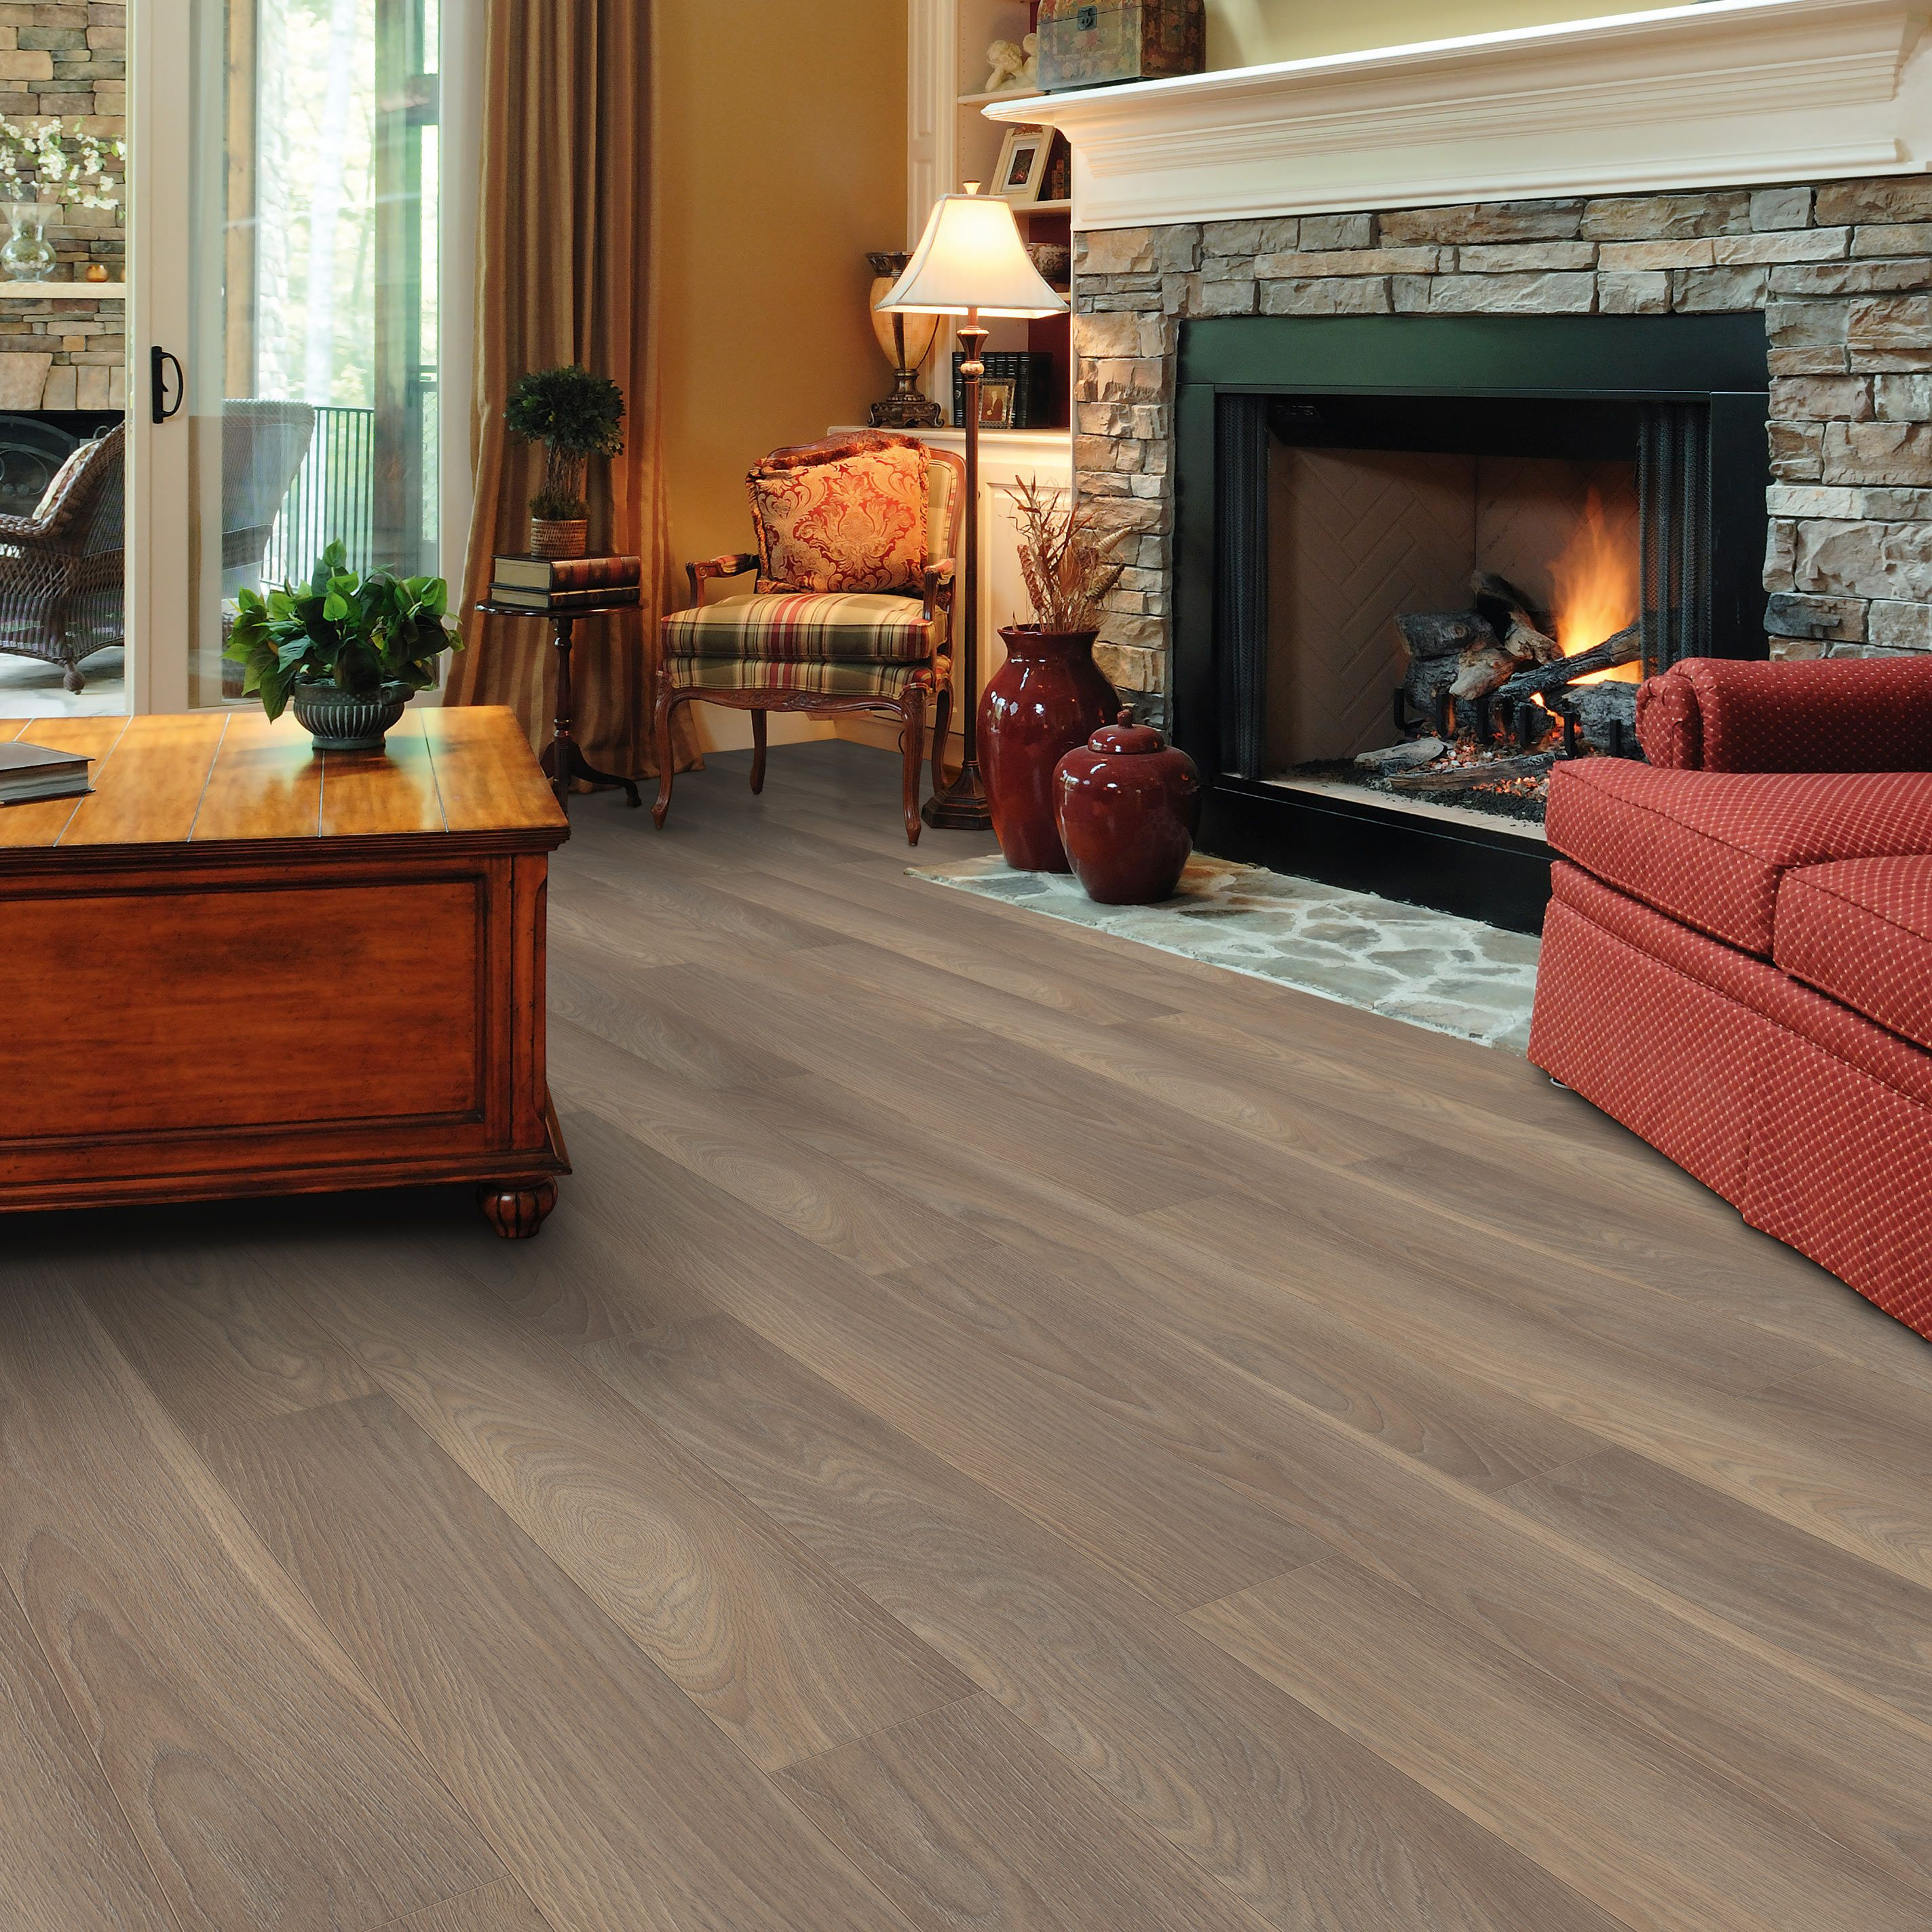 Belcanto Napoli Oak Effect Laminate Flooring 2 M² Pack